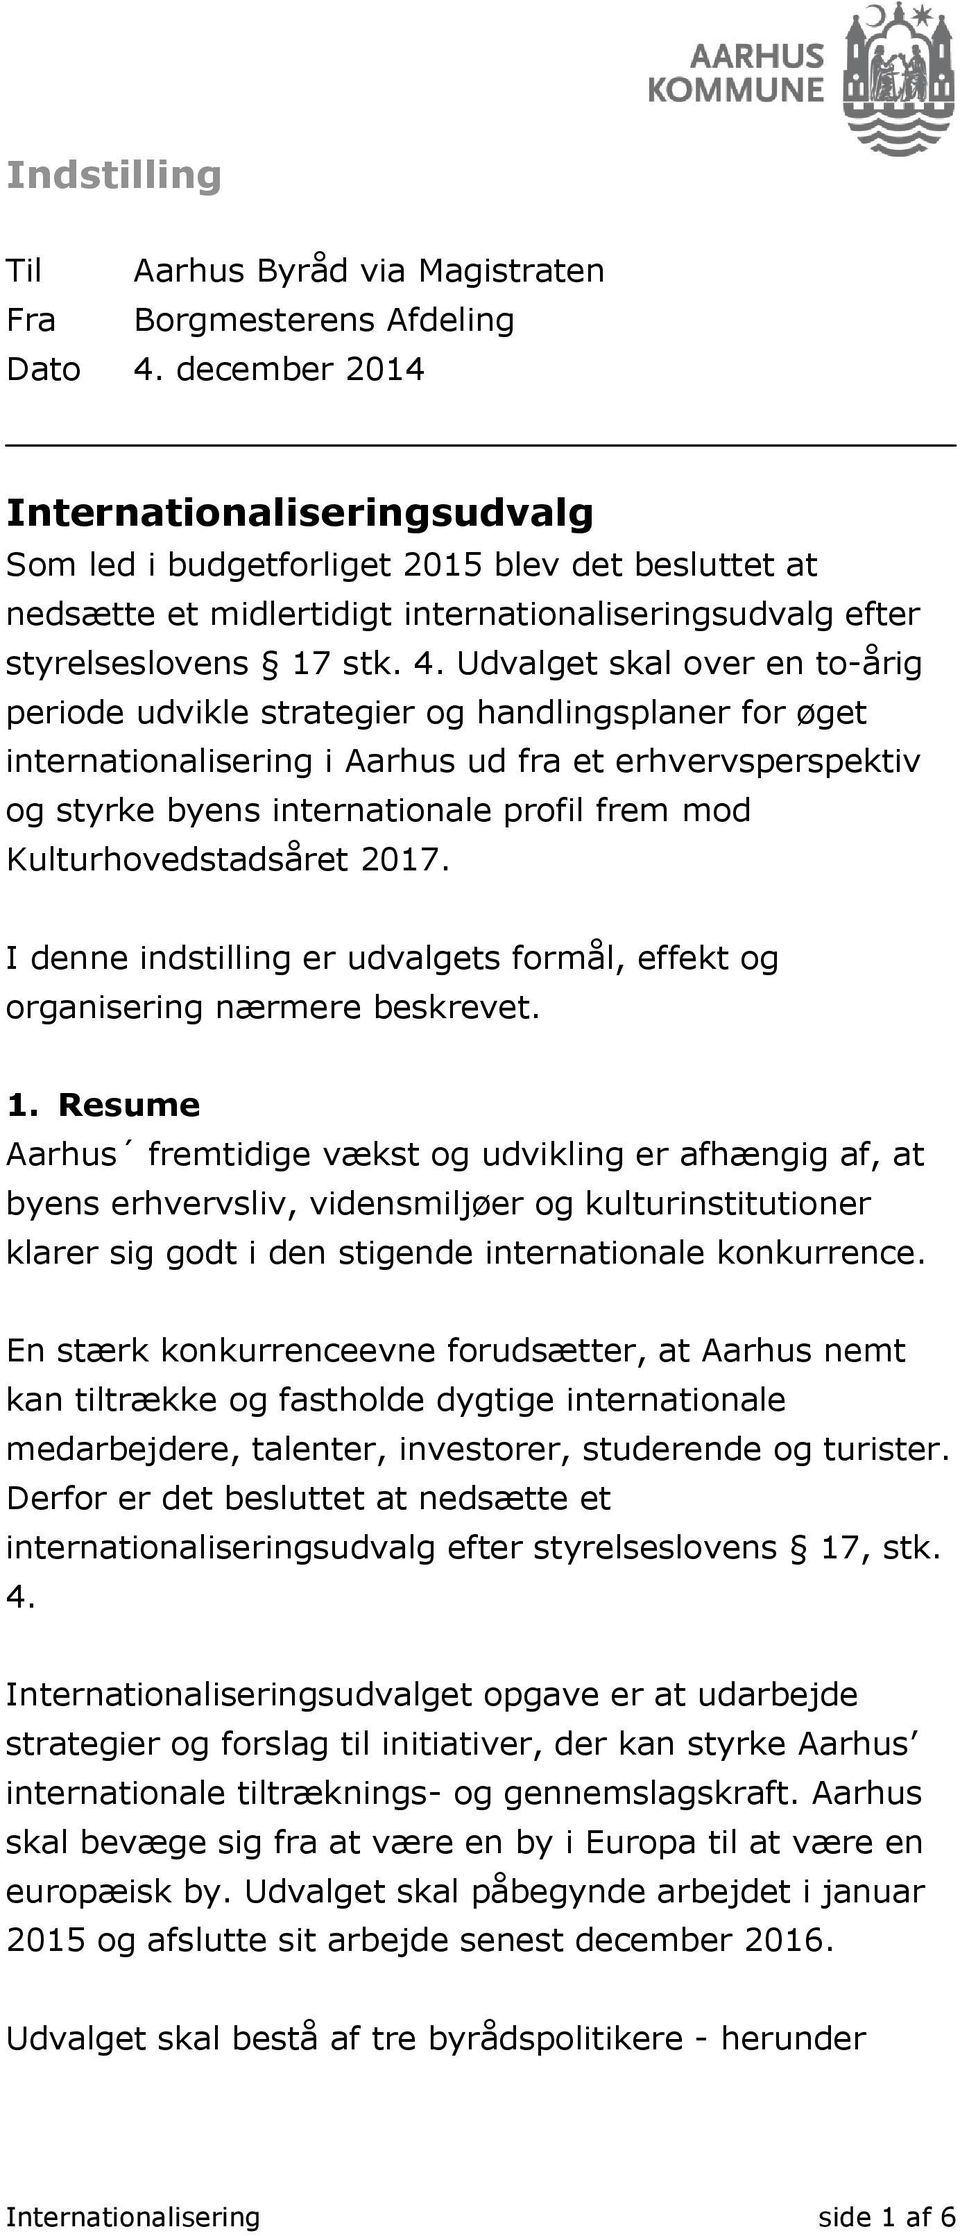 Udvalget skal over en to-årig periode udvikle strategier og handlingsplaner for øget internationalisering i Aarhus ud fra et erhvervsperspektiv og styrke byens internationale profil frem mod